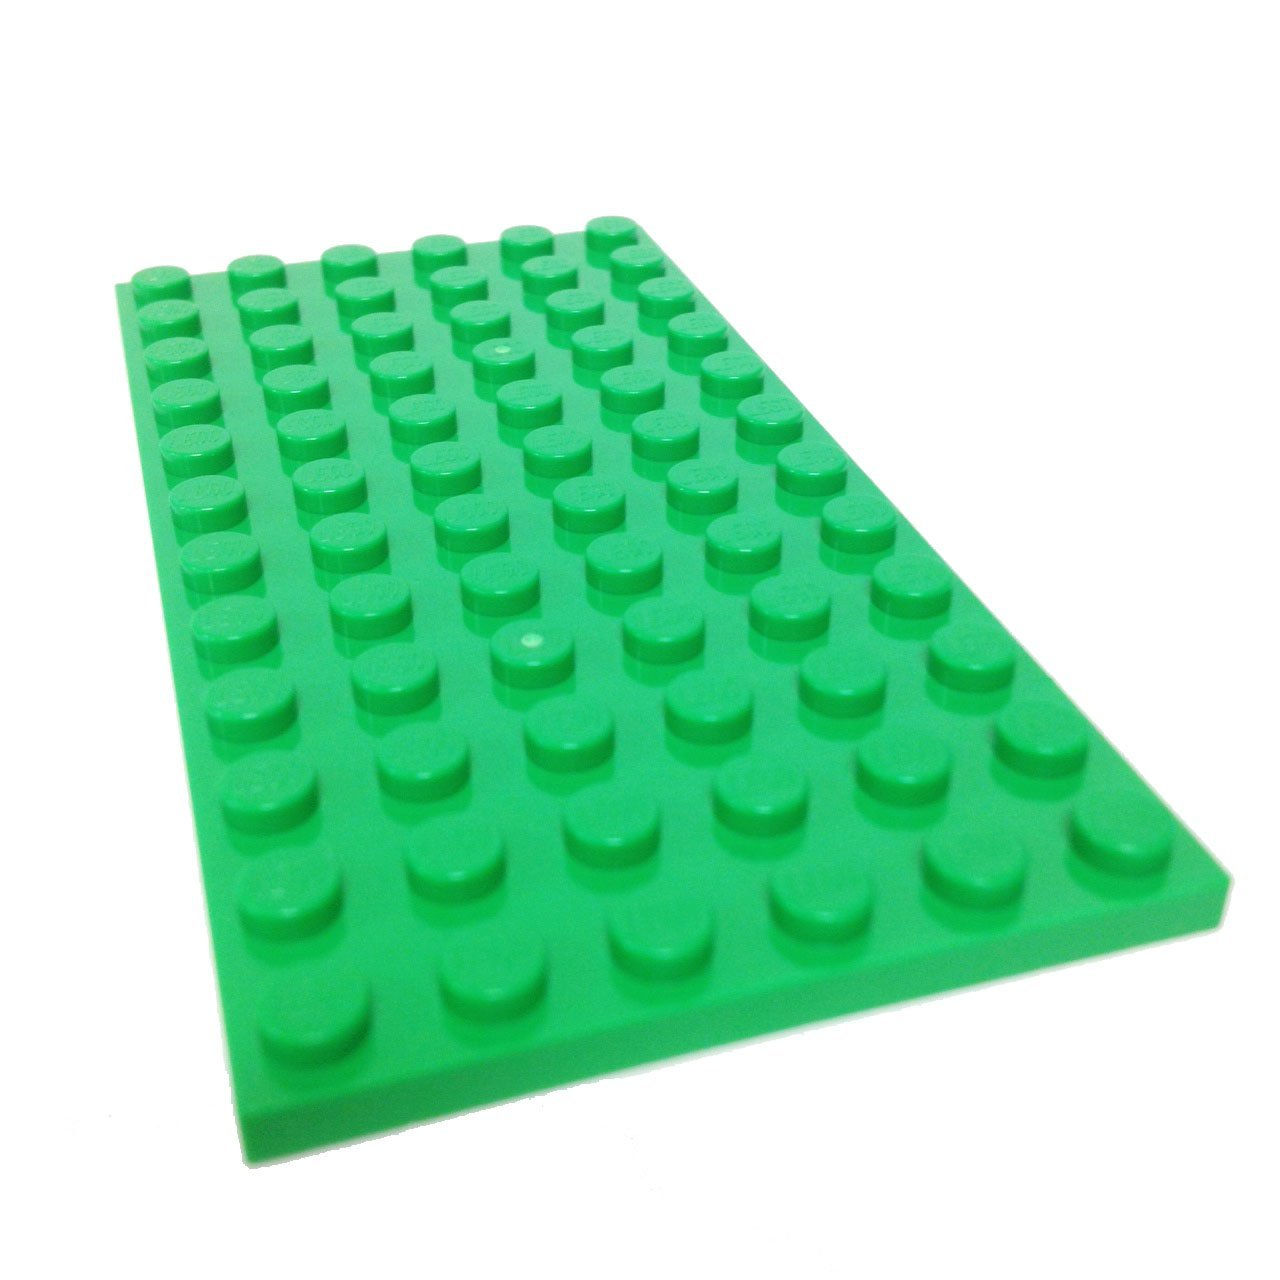 Lego Parts: Plate 6 x 12 (Bright Green)